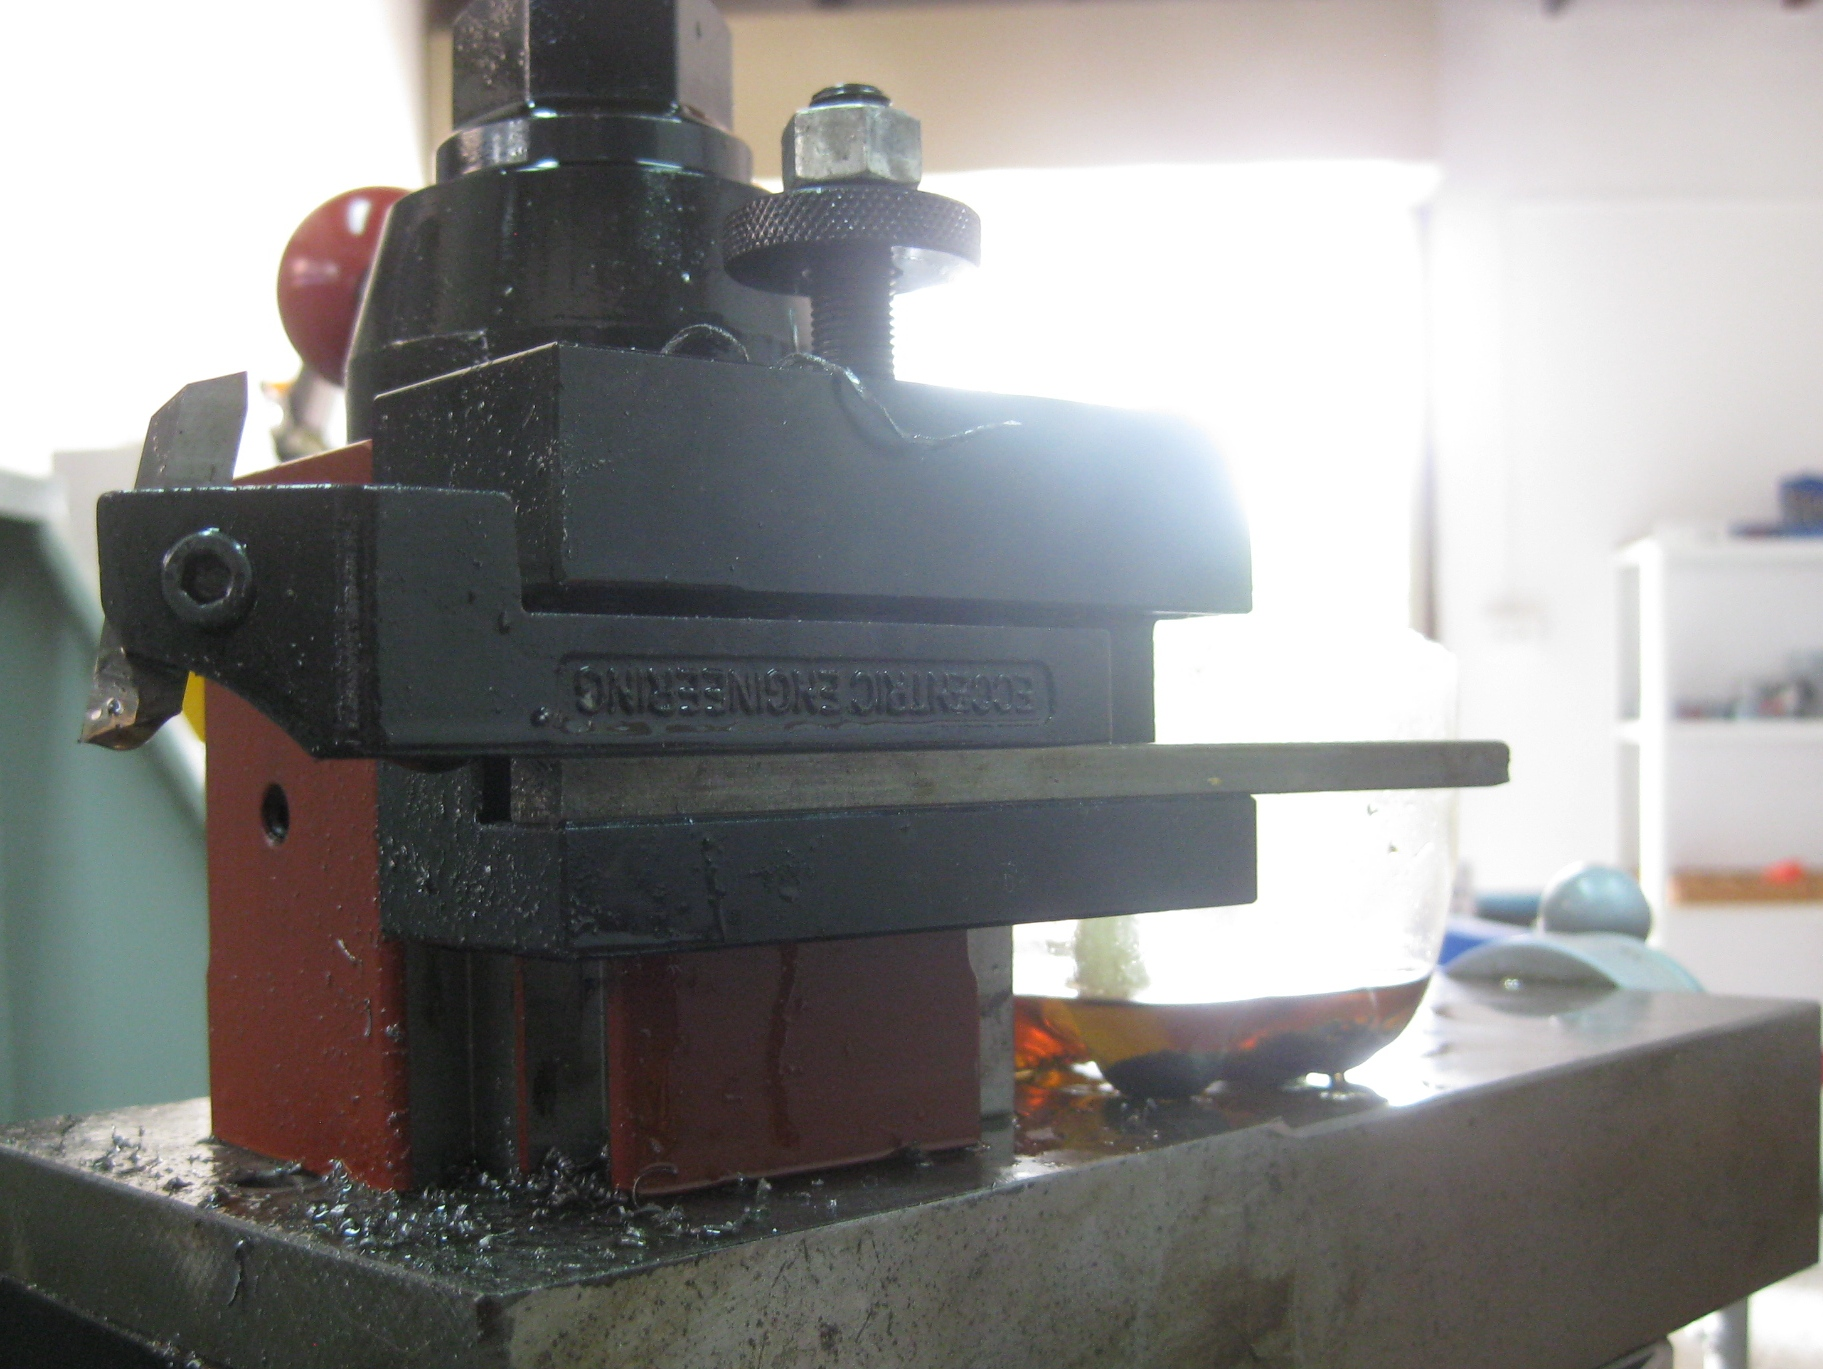 Image showing The Complete Lathe Screwcutting Tool Bit in Upside-Down Holder